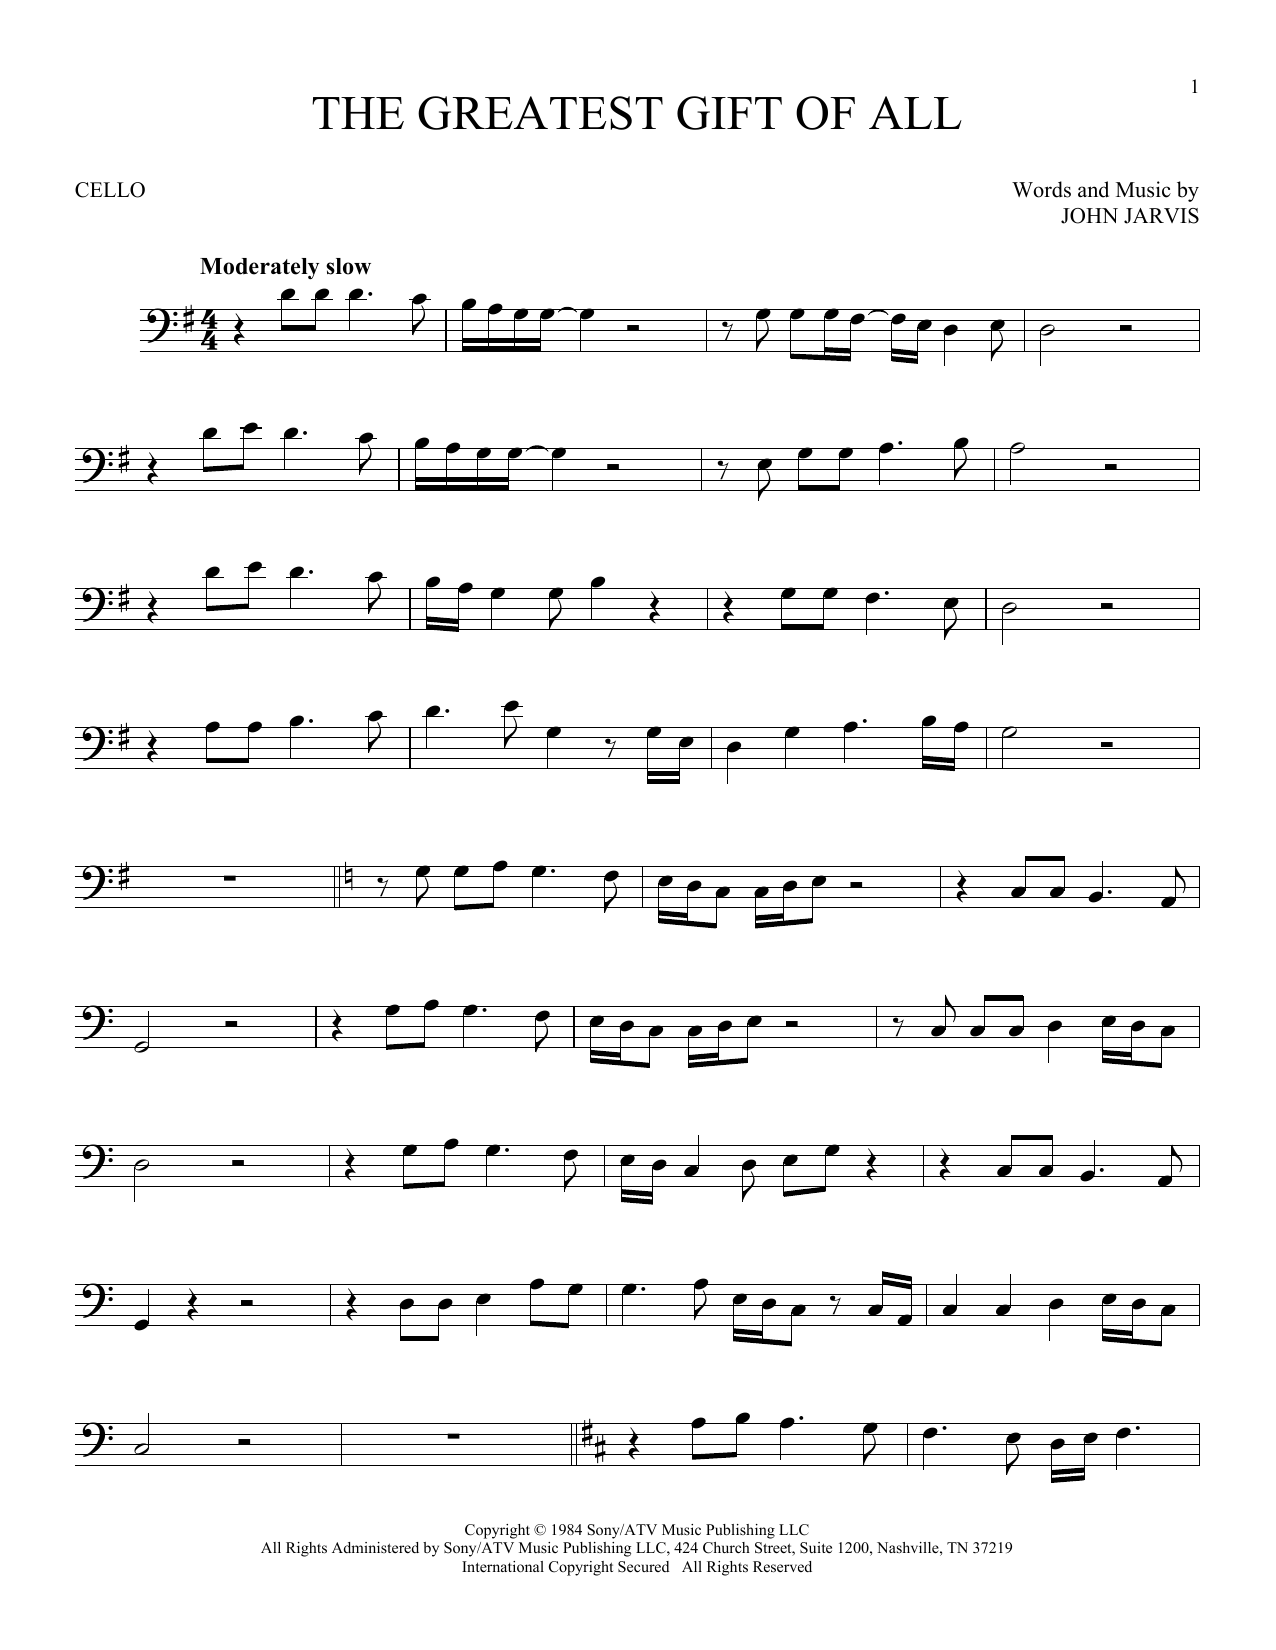 The Greatest Gift Of All Sheet Music